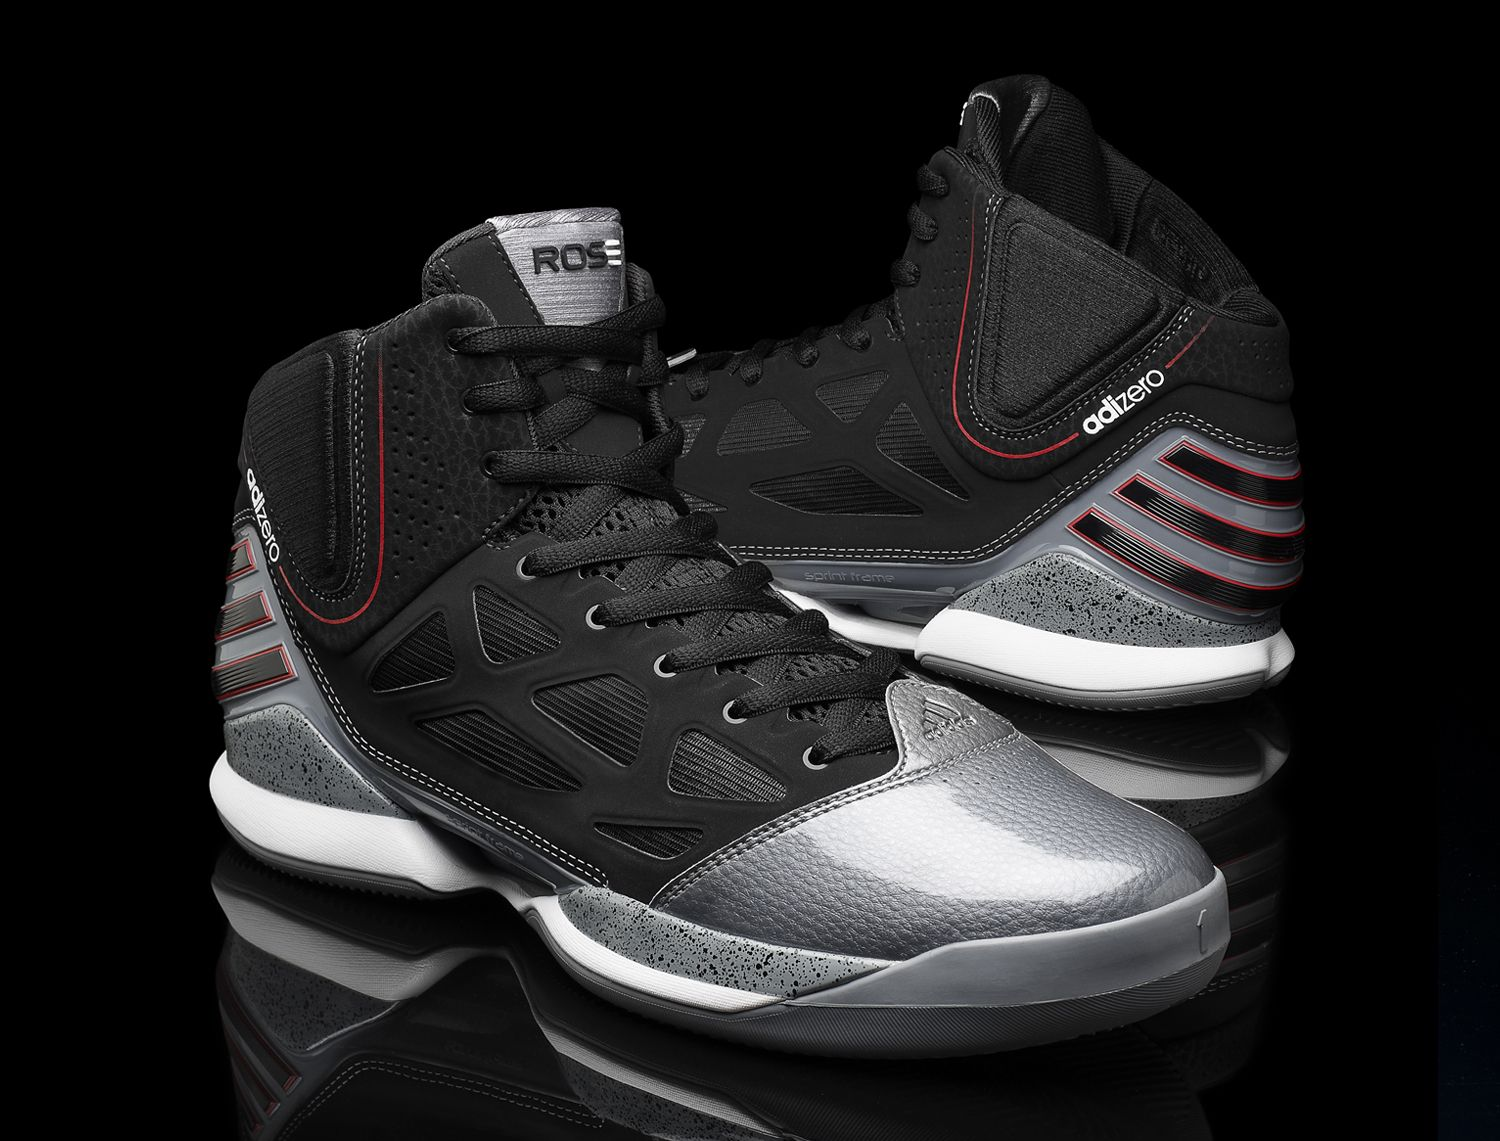 promo code 1a186 20195 Next pair of basketball shoes. Derrick Rose For adiZero Rose 2.5 Pair To  The NBA Playoffs ~ A Taste Of Goodness